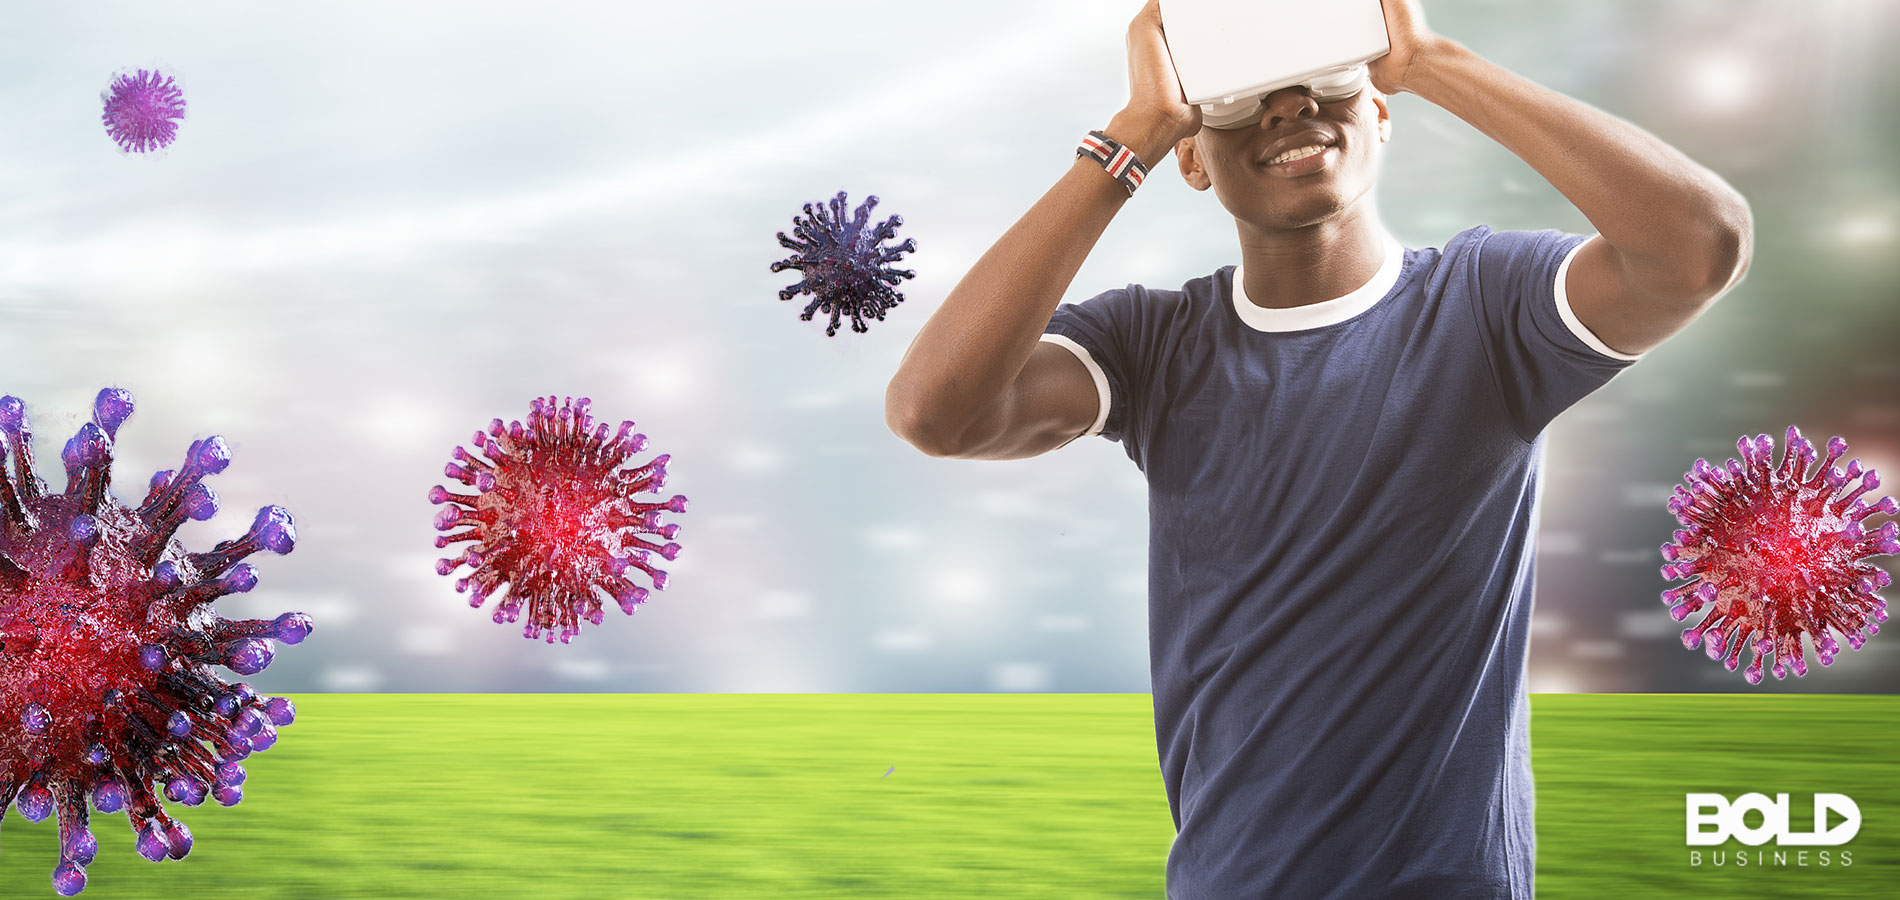 Some dude using VR goggles while coronavirus hovers around him